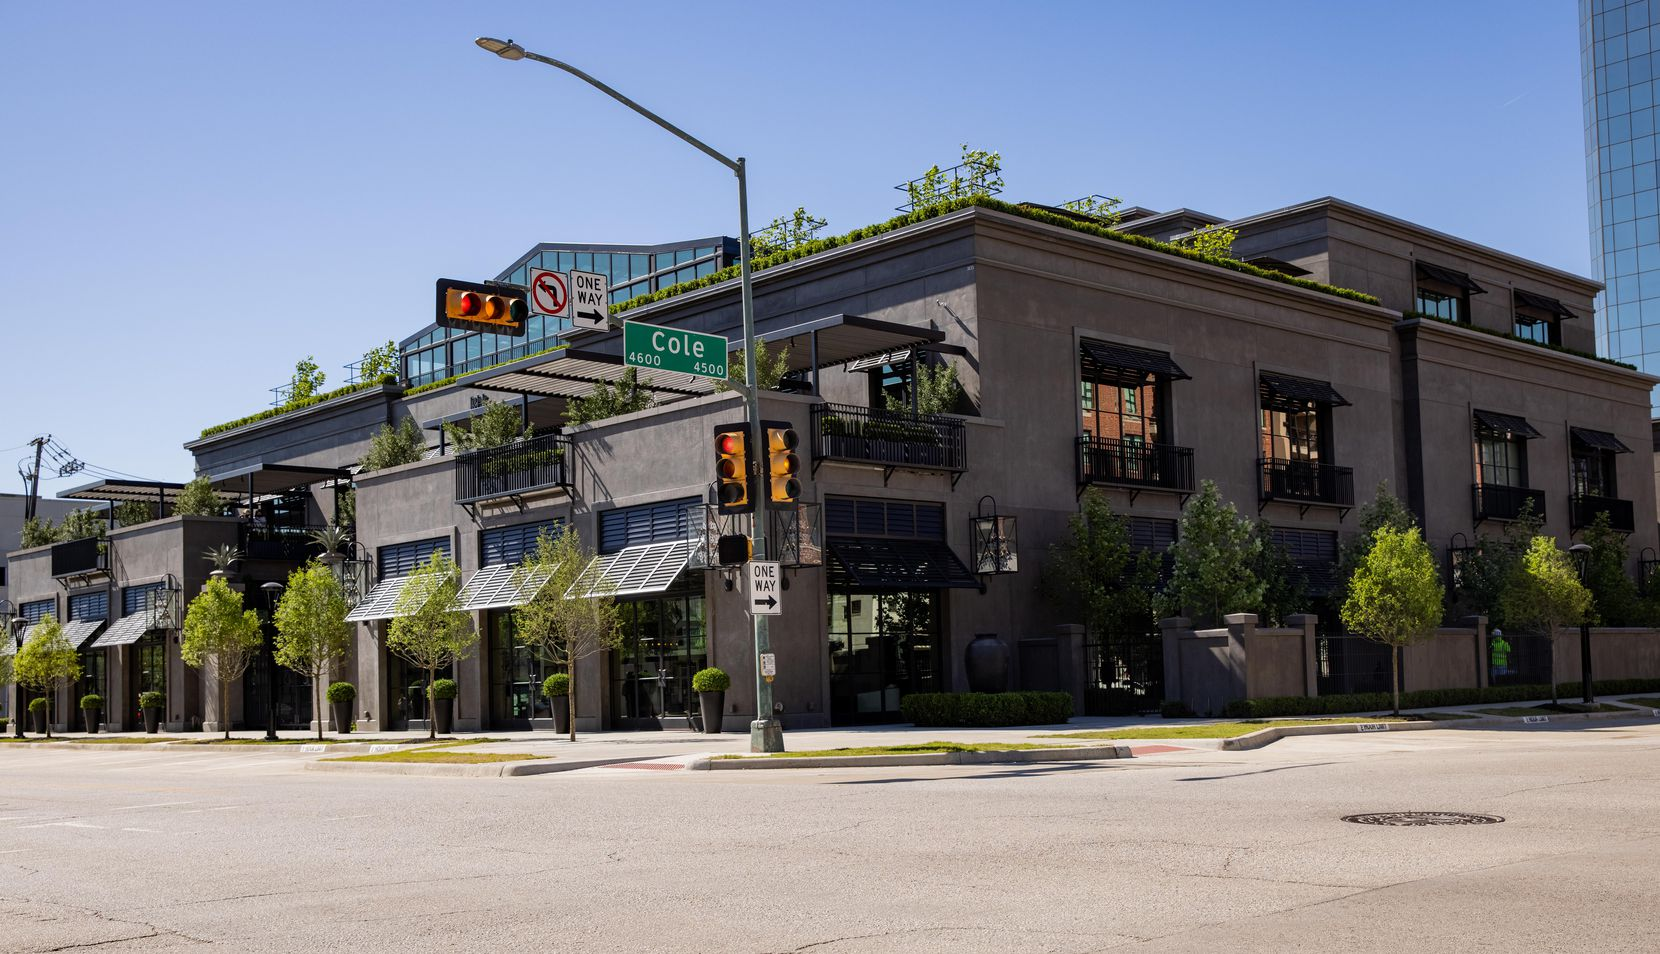 The exterior of the new RH store in Dallas, seen from the corner of Cole Avenue and Knox Street.